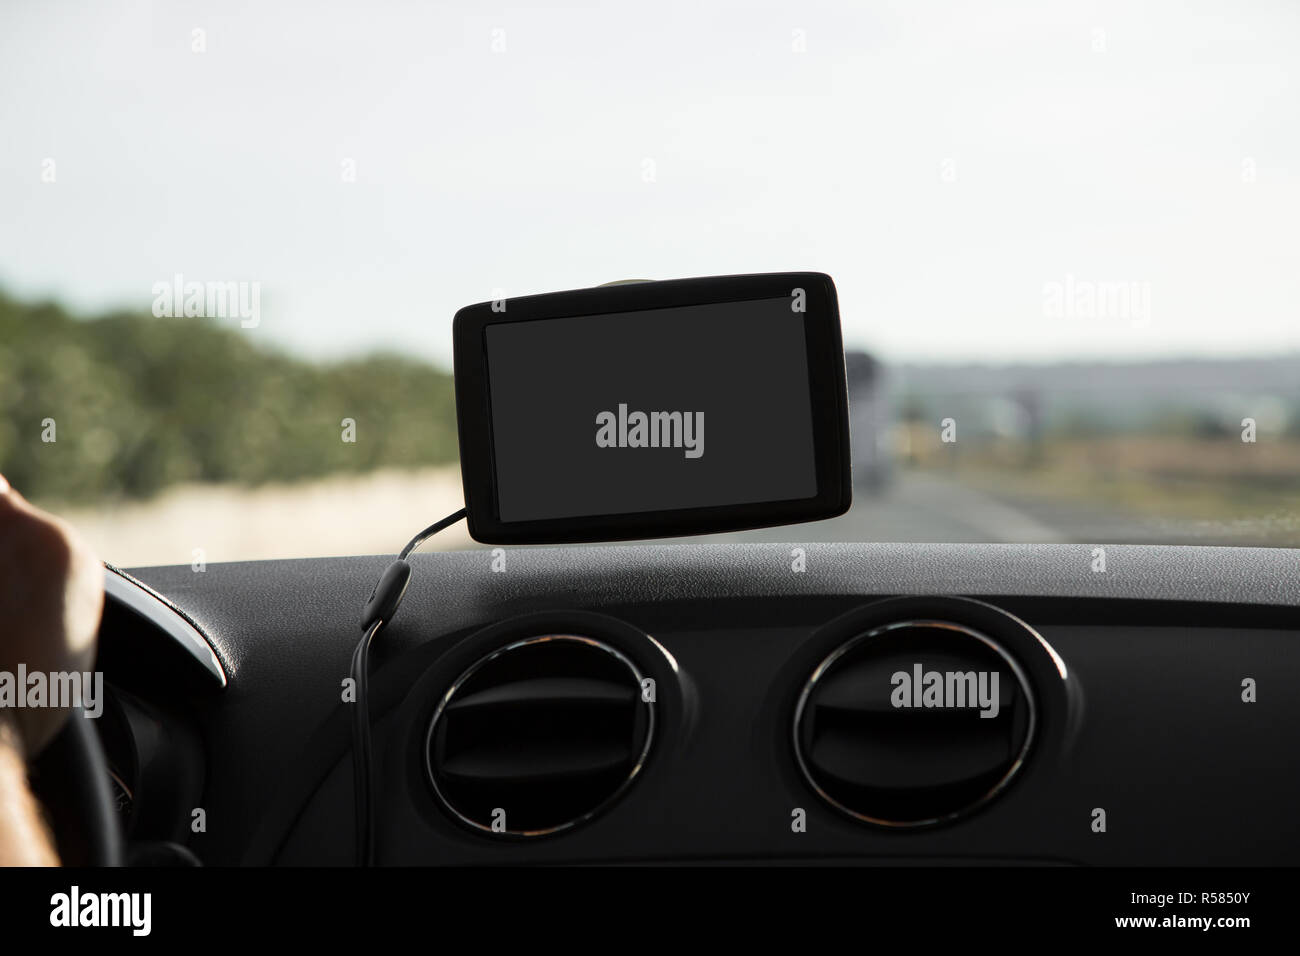 In the car with navigation device - Stock Image